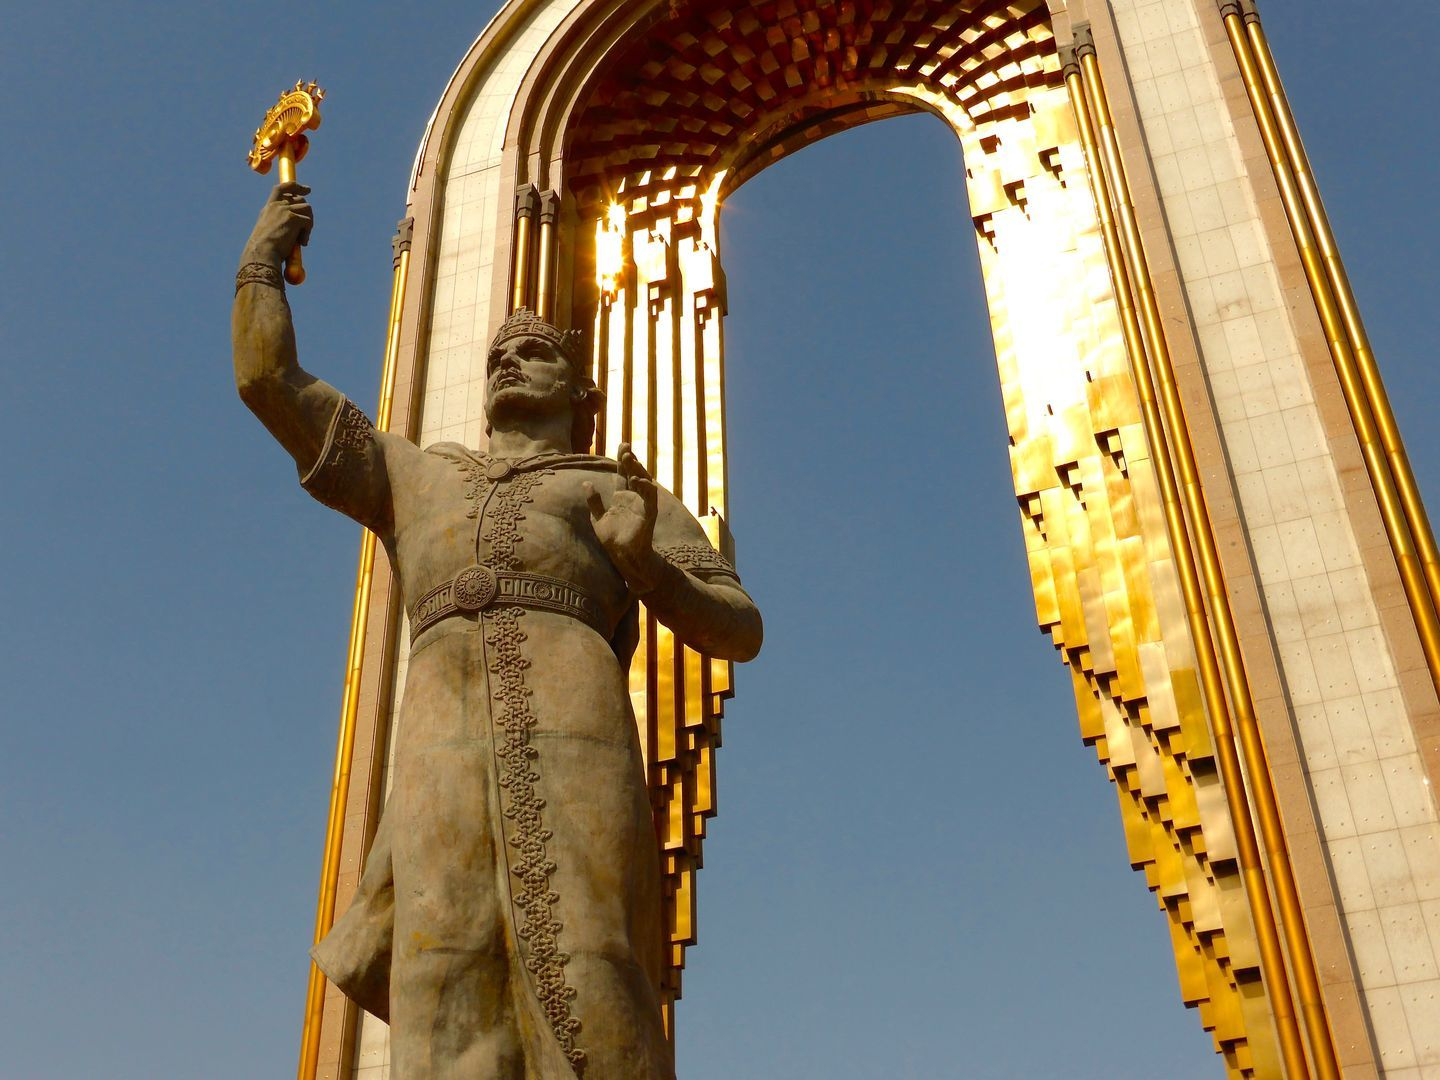 statue of Samanid ruler Ismail Somoni with golden crown in Dushanbe main Square shows tajikistan culture